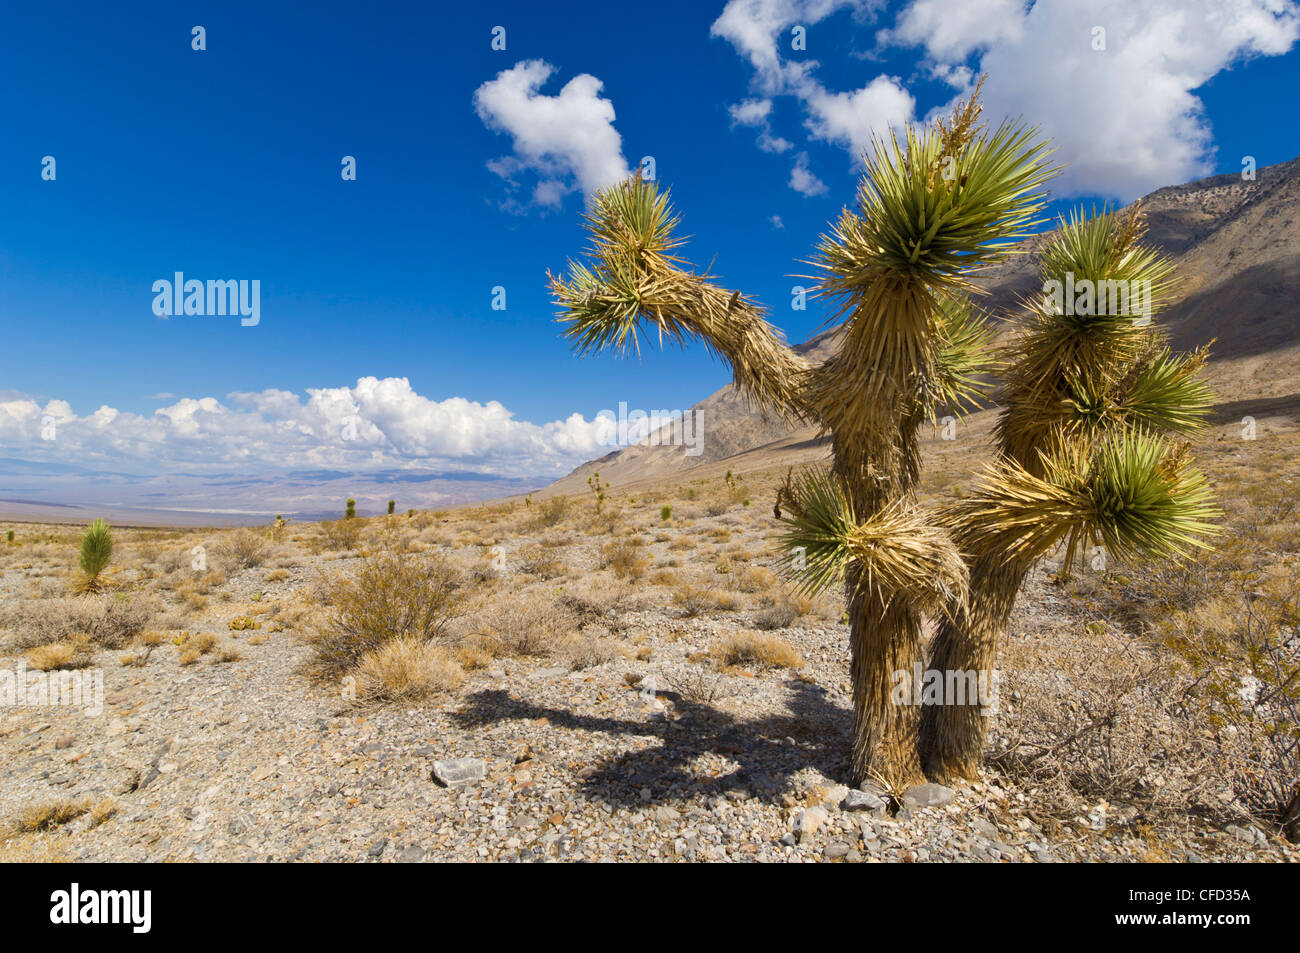 Joshua tree forest (Yucca brevifolia), on the Racetrack road, Death Valley National Park, California, United States - Stock Image